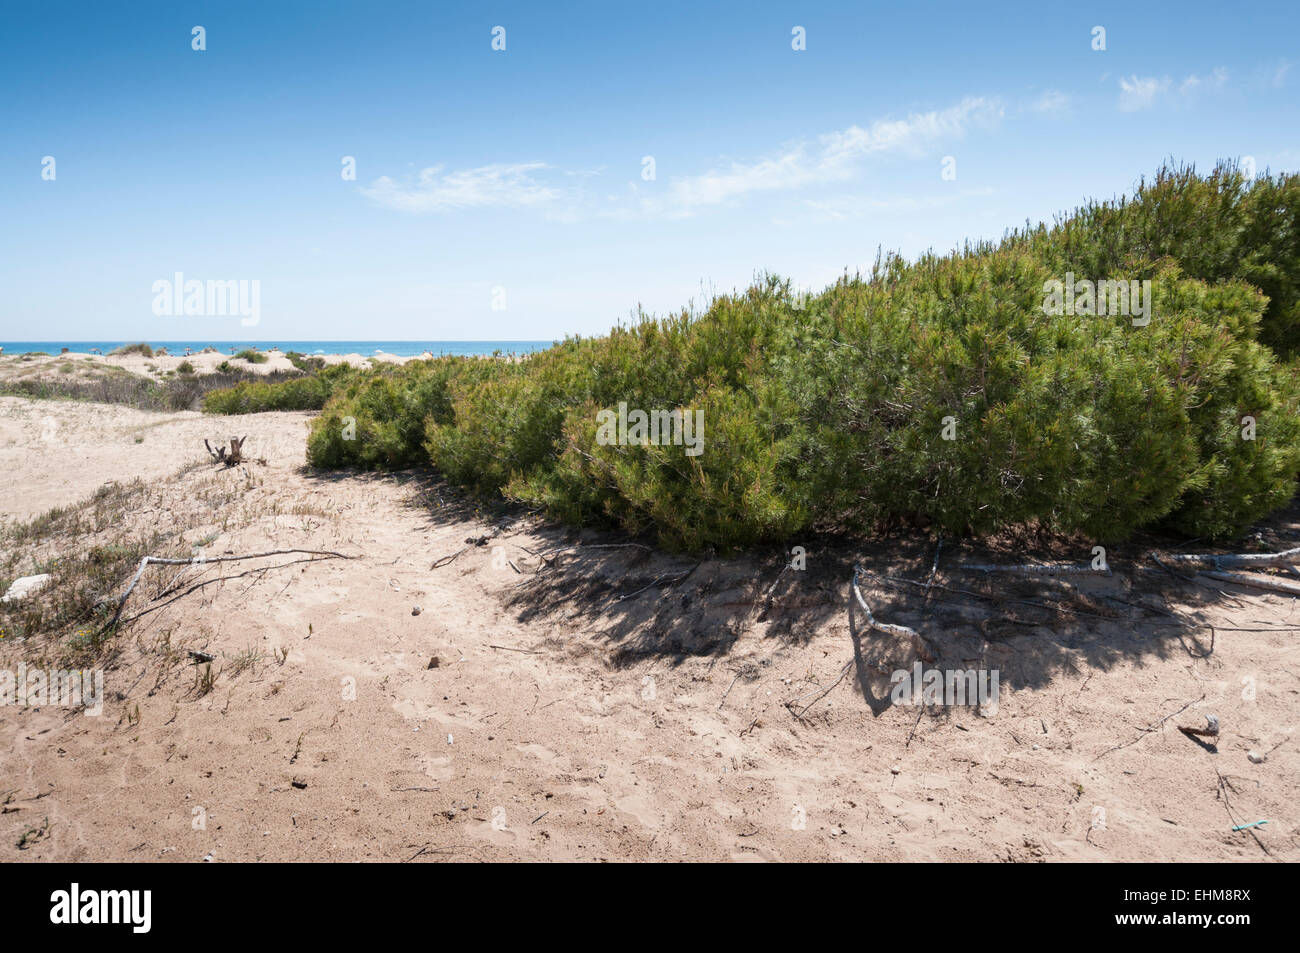 Aleppo Pine, Pinus halepensis, growing in dunes in Carabassi beach, Elche, Spain - Stock Image